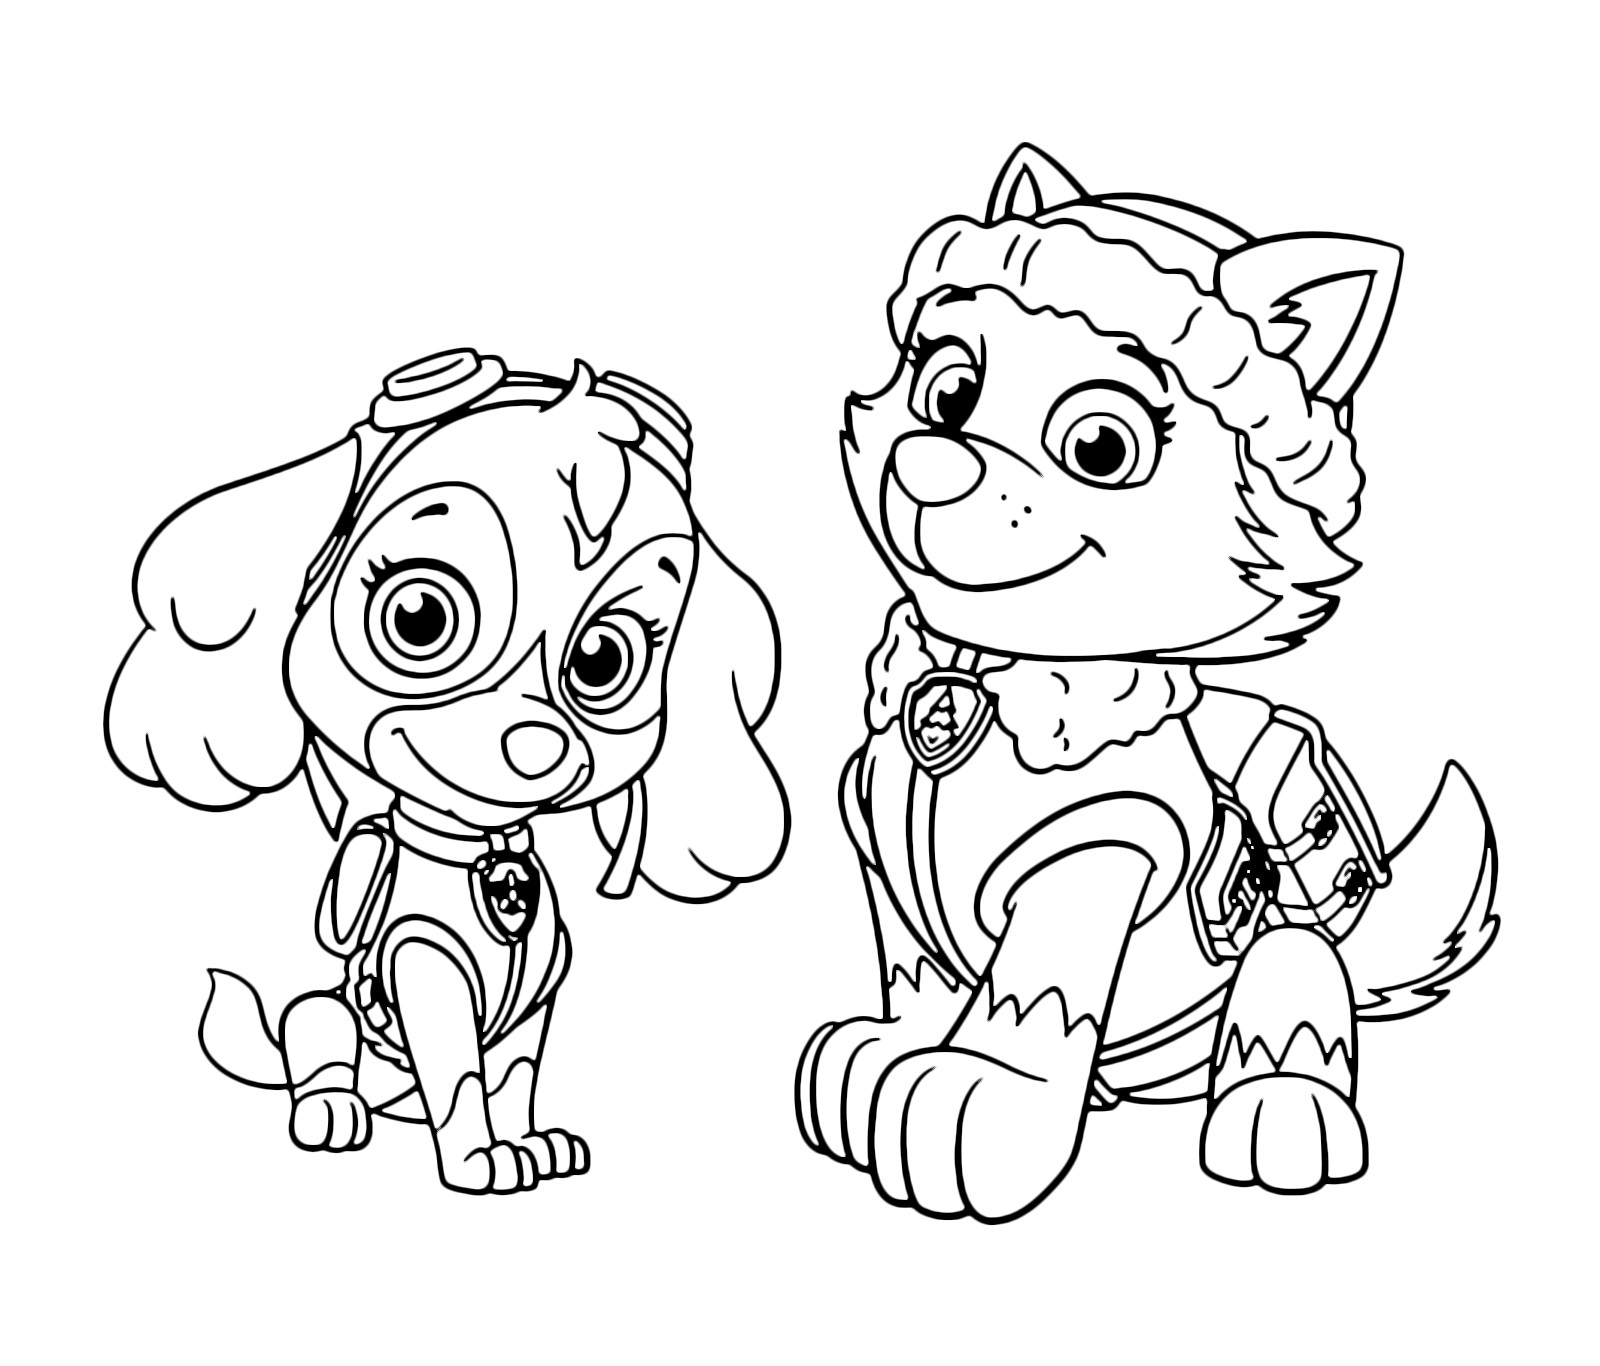 Paw Patrol Halloween Coloring Pages At Getcolorings